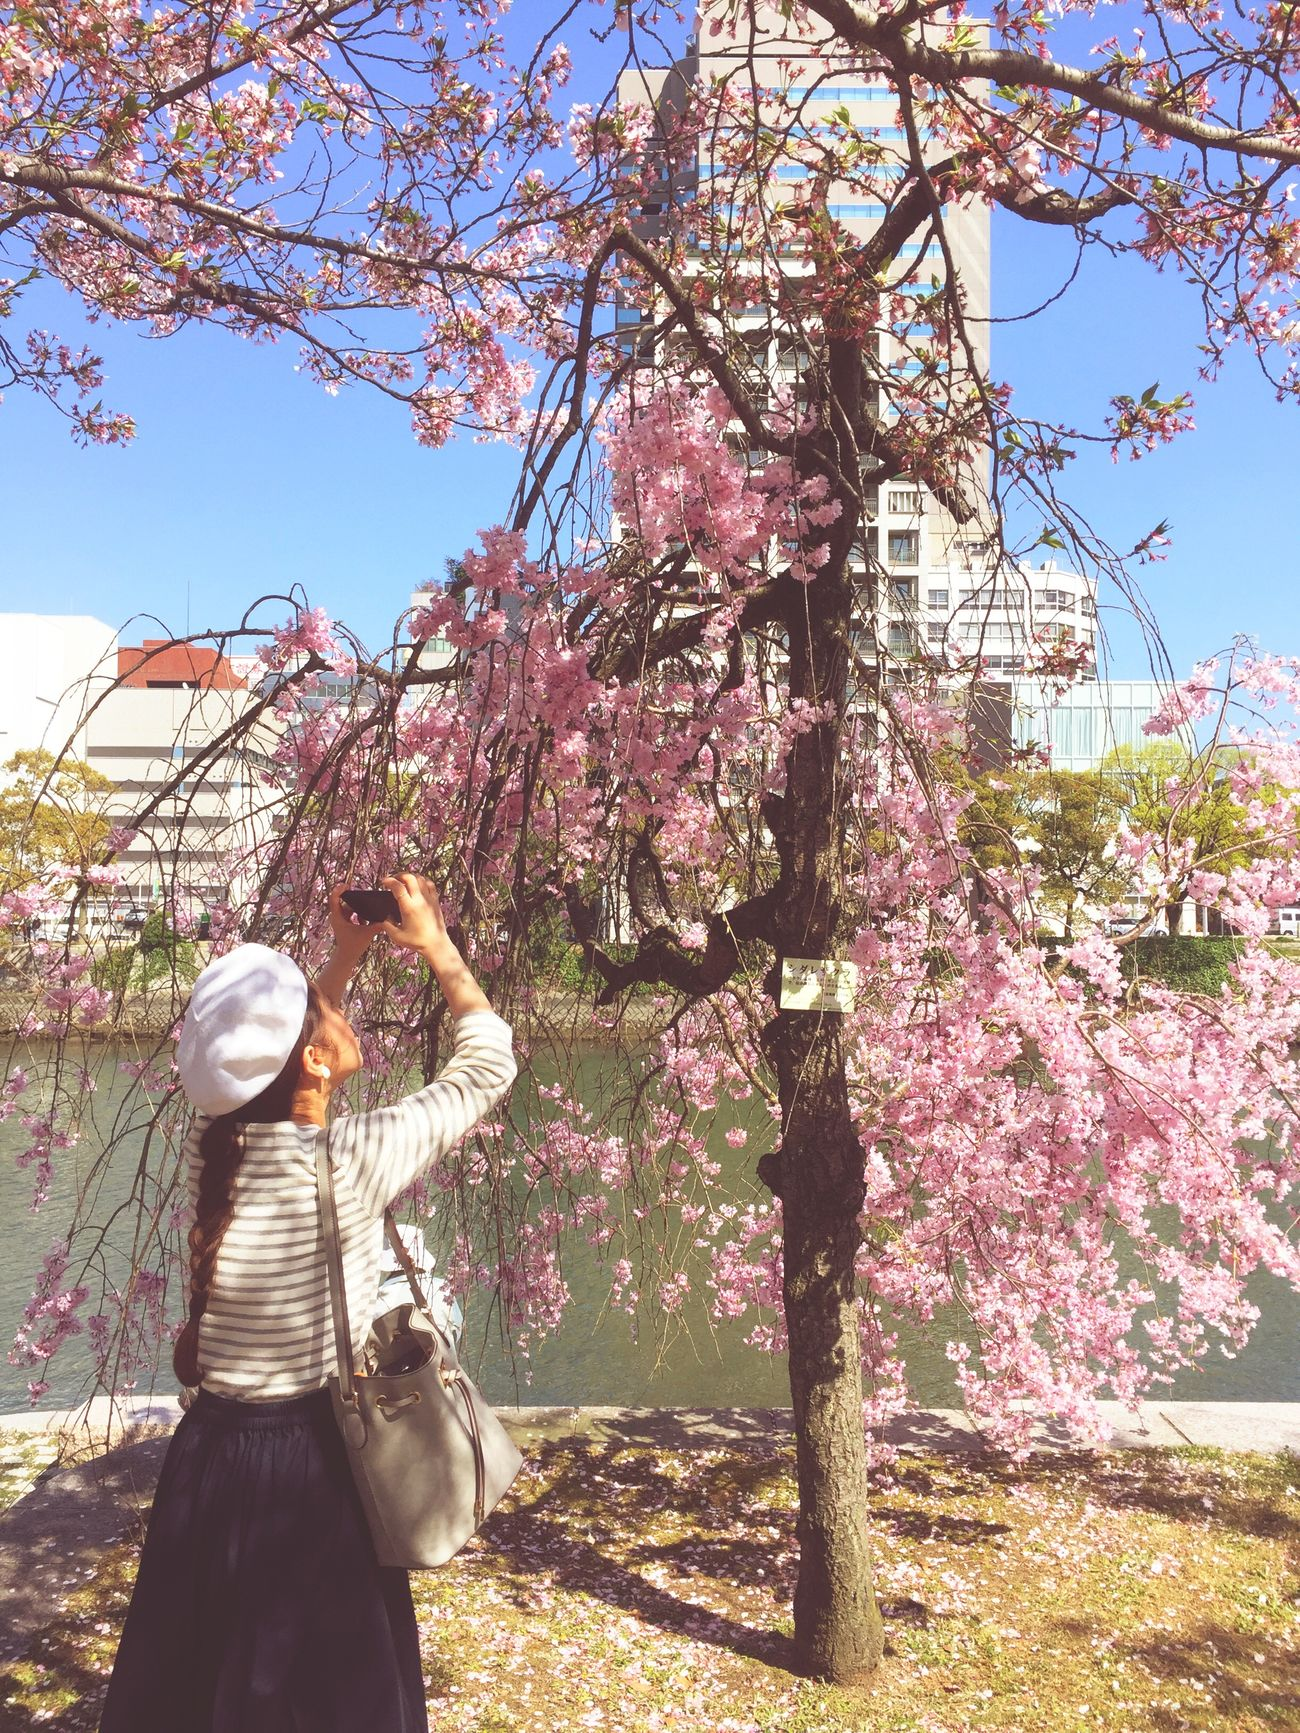 Cherry Blossoms Springtime Happy Time Withbestfriend Take Photos Smile Peacepark Hiroshima Japan